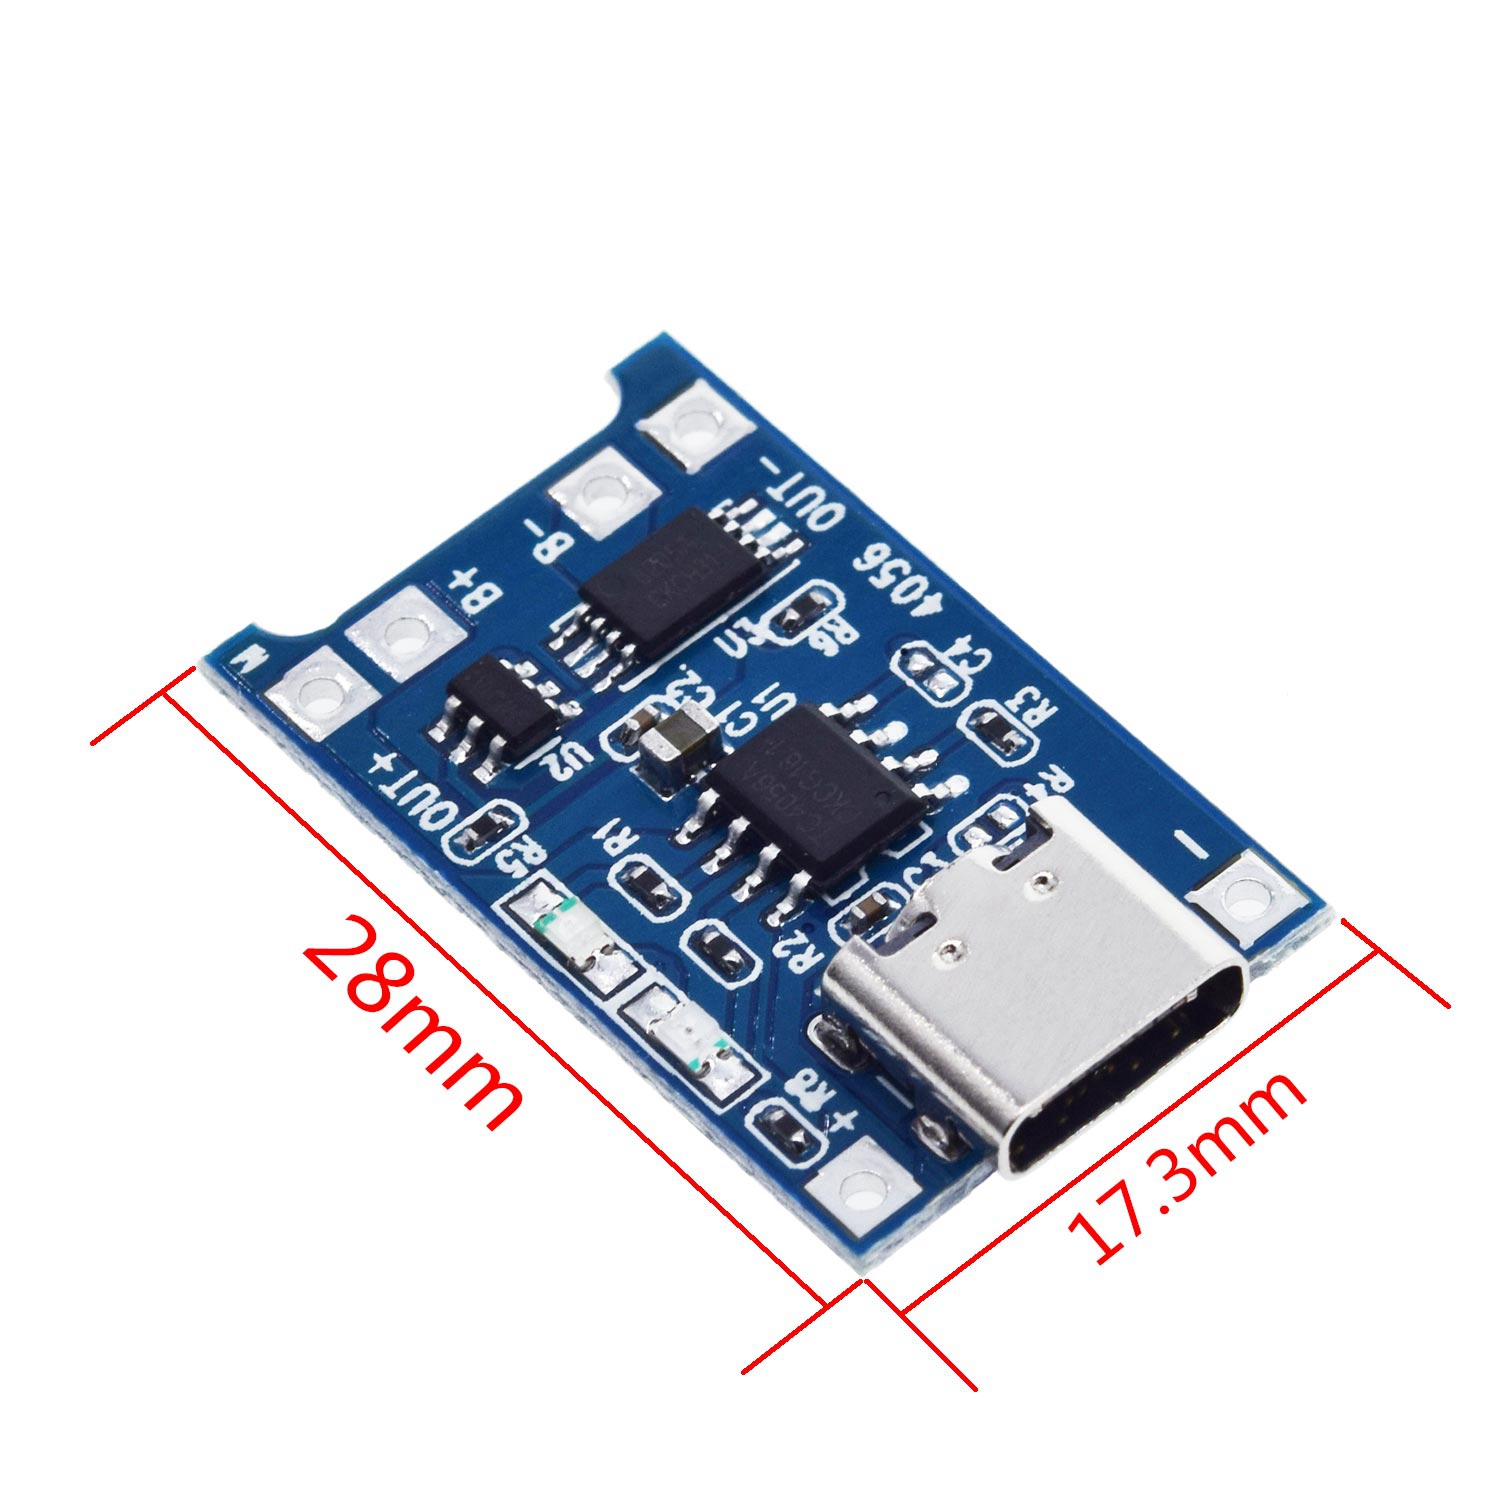 5pcs Micro/Type-c USB 5V 1A 18650 TP4056 Lithium Battery Charger Module Charging Board With Protection Dual Functions 1A Li-ion 2